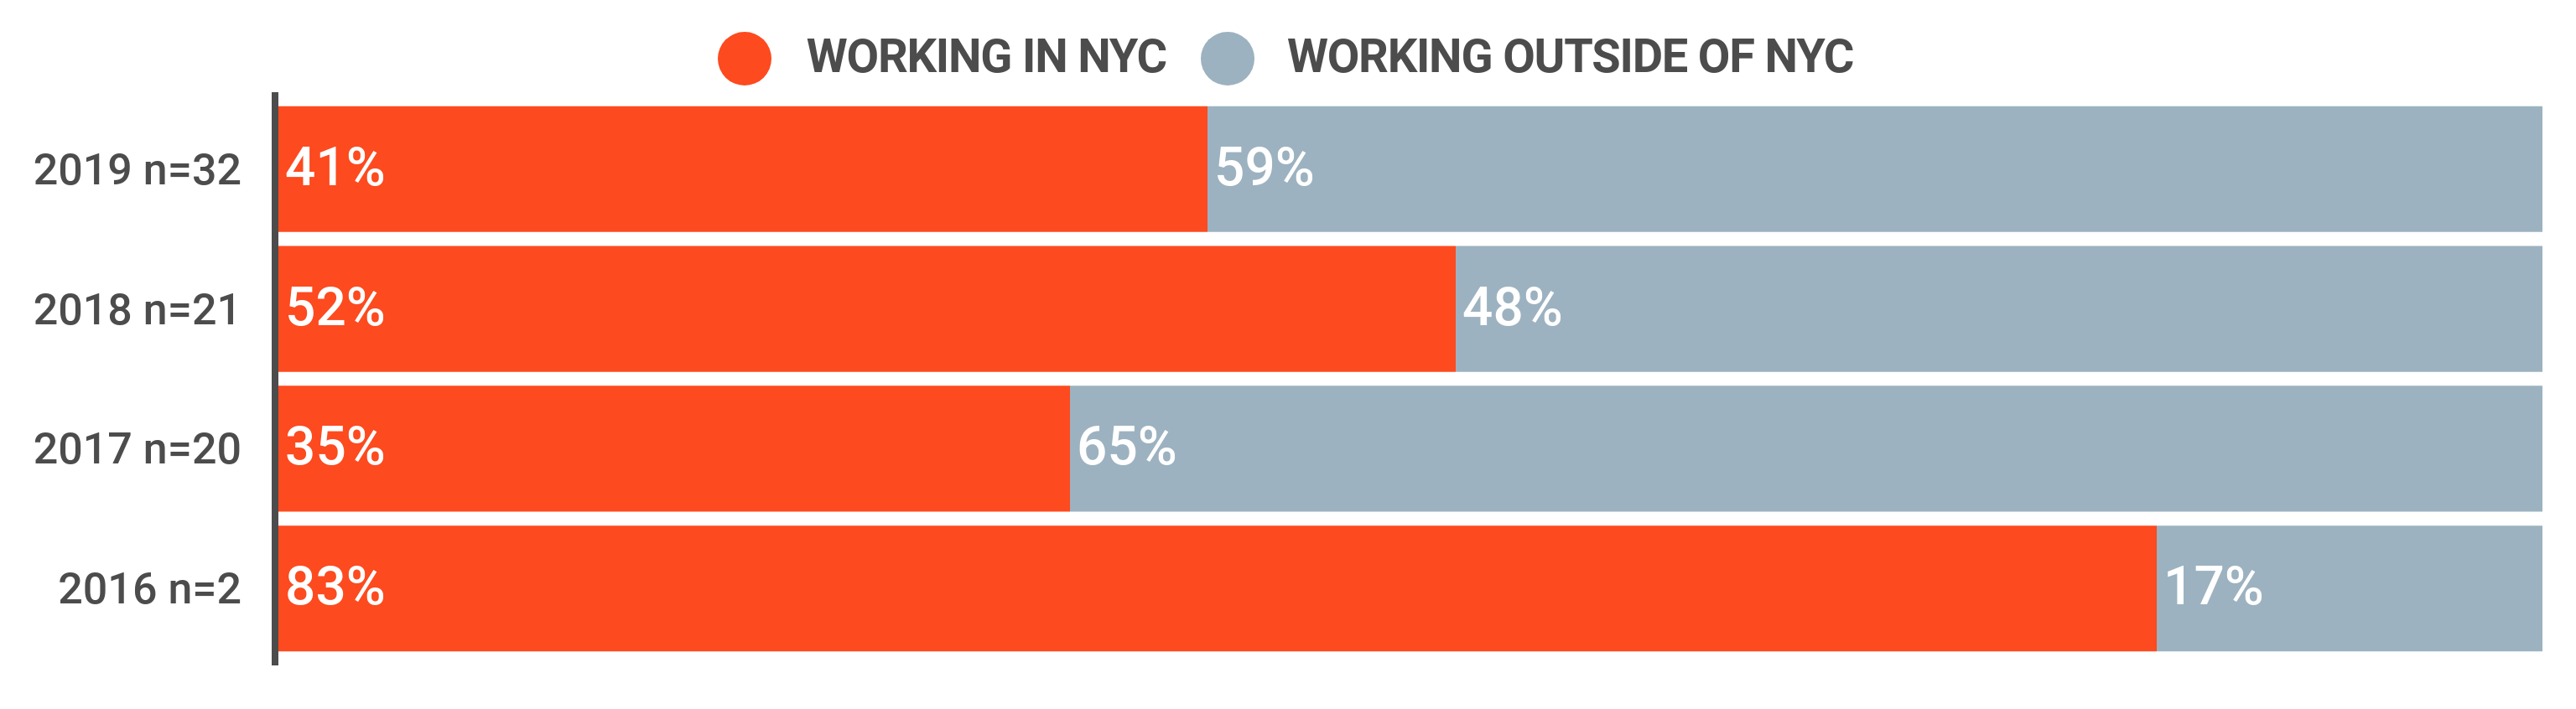 Bar-graph, Post Graduation Working Location, (2016-2019). For 2019: 41% worked in NYC and 59% worked elsewhere; for 2018: 52% worked in NYC and 48% worked elsewhere; for 2017, 35% worked in NYC and 65% worked elsewhere; and for 2016, 83% worked in NYC and 17% did not.